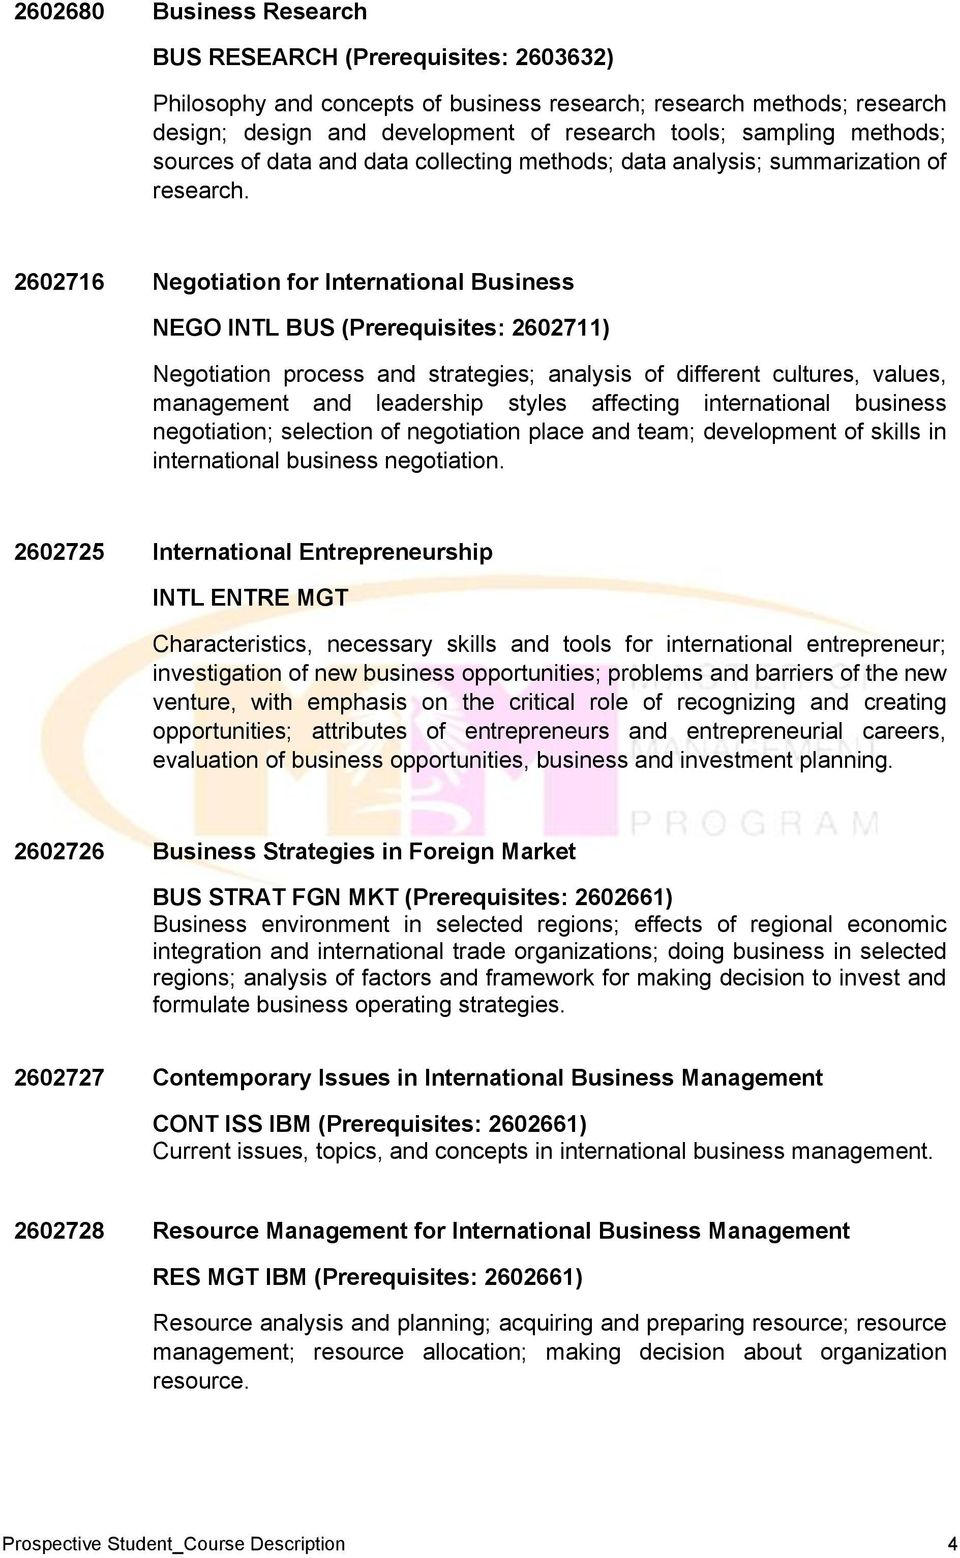 2602716 Negotiation for International Business NEGO INTL BUS (Prerequisites: 2602711) Negotiation process and strategies; analysis of different cultures, values, management and leadership styles